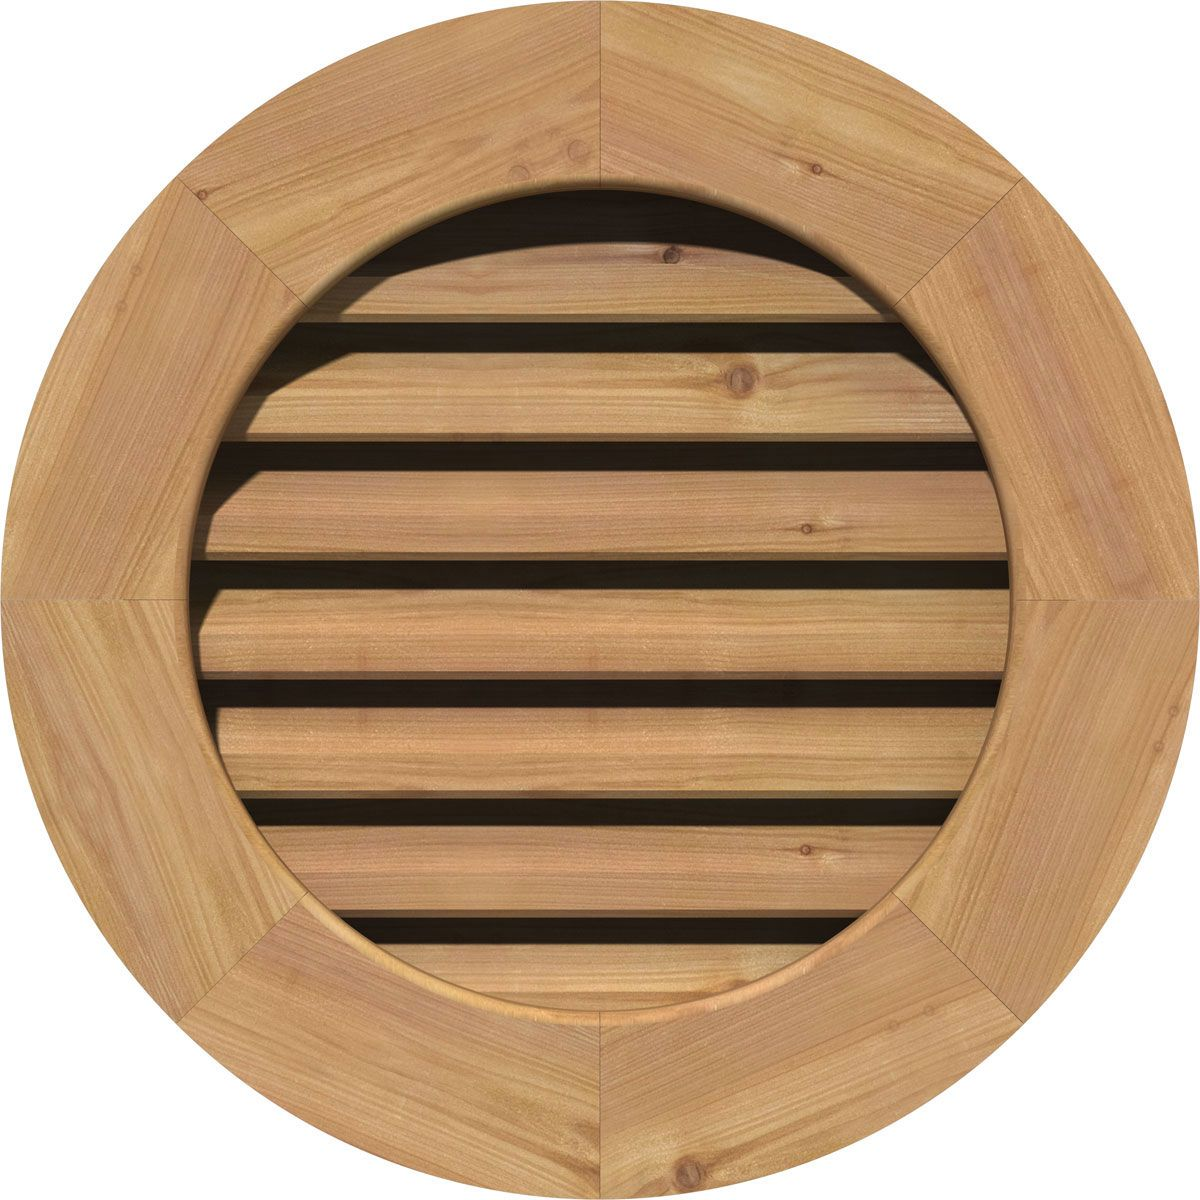 12 Inch W X 12 Inch H Round Gable Vent 17 Inch W X 17 Inch H Frame Size Unfinished Non Functional Rough Sawn Western Red Cedar Gable Vent W Decorative Fac With Images Gable Vents